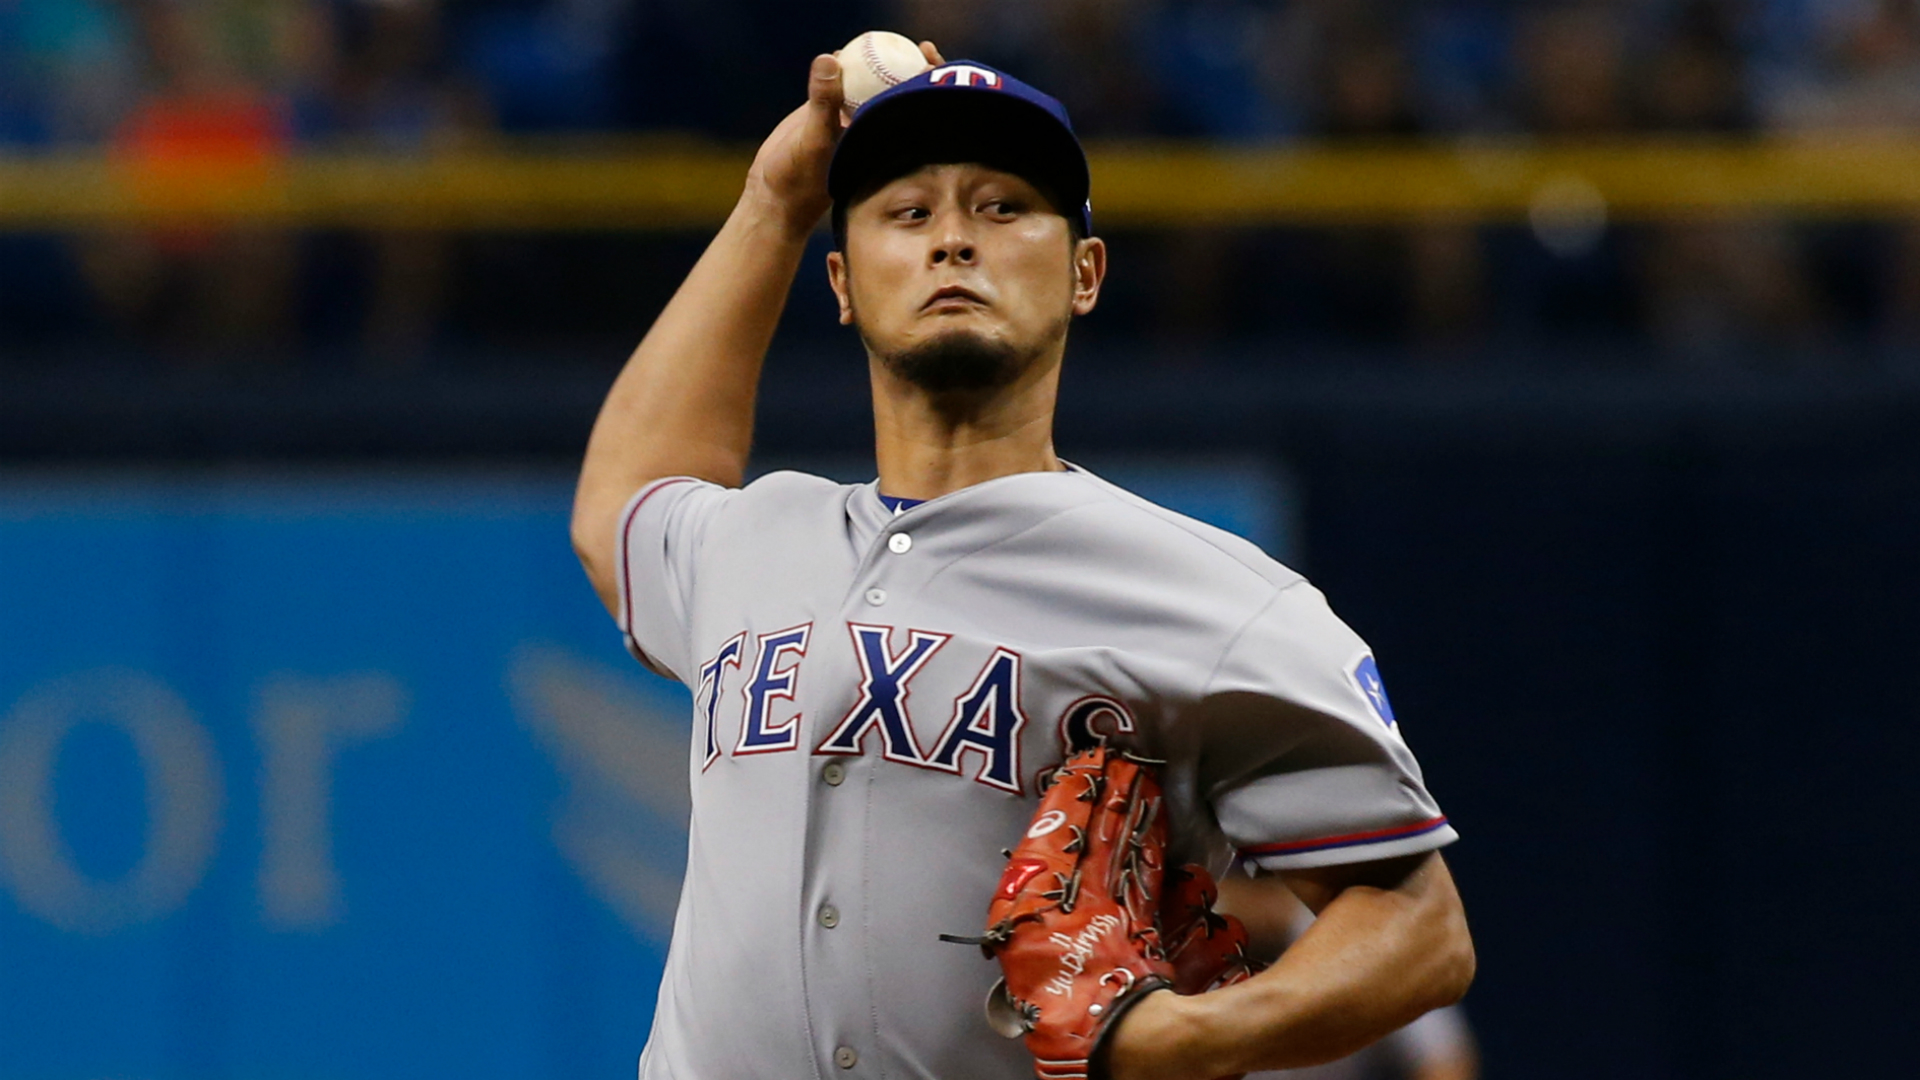 Major League Baseball trade rumors: Rangers place Yu Darvish on trading block